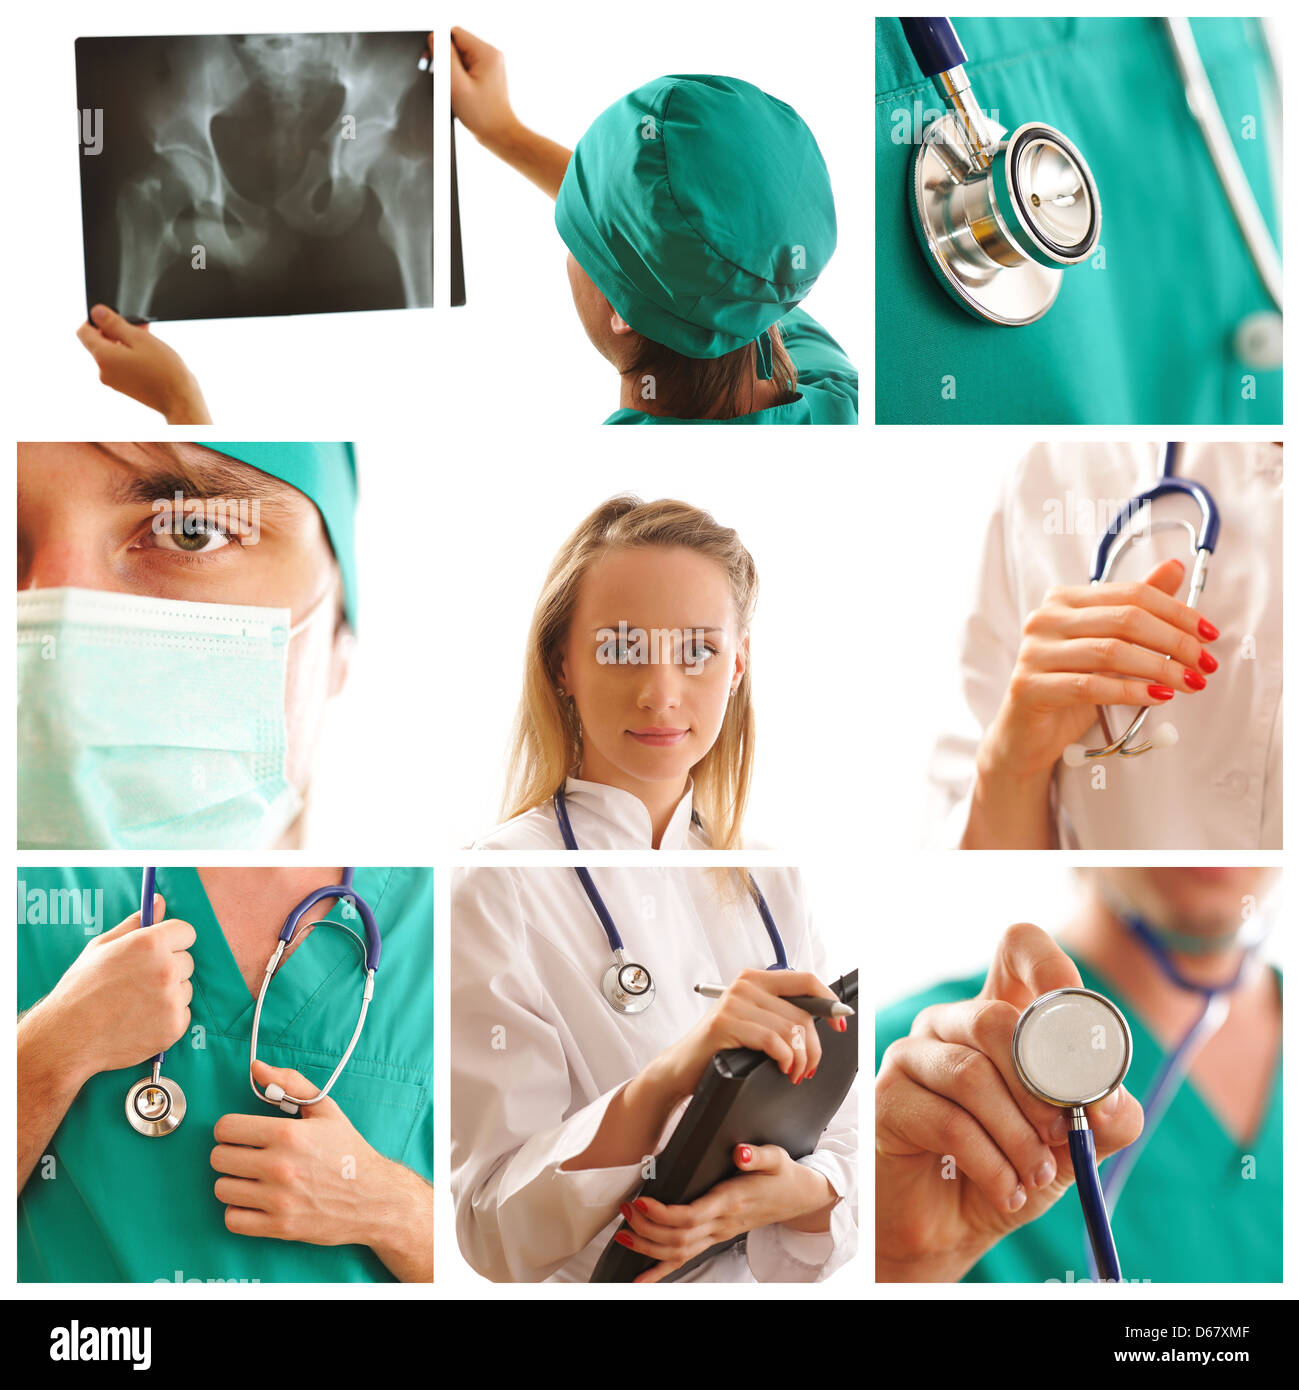 Medical collage - Stock Image